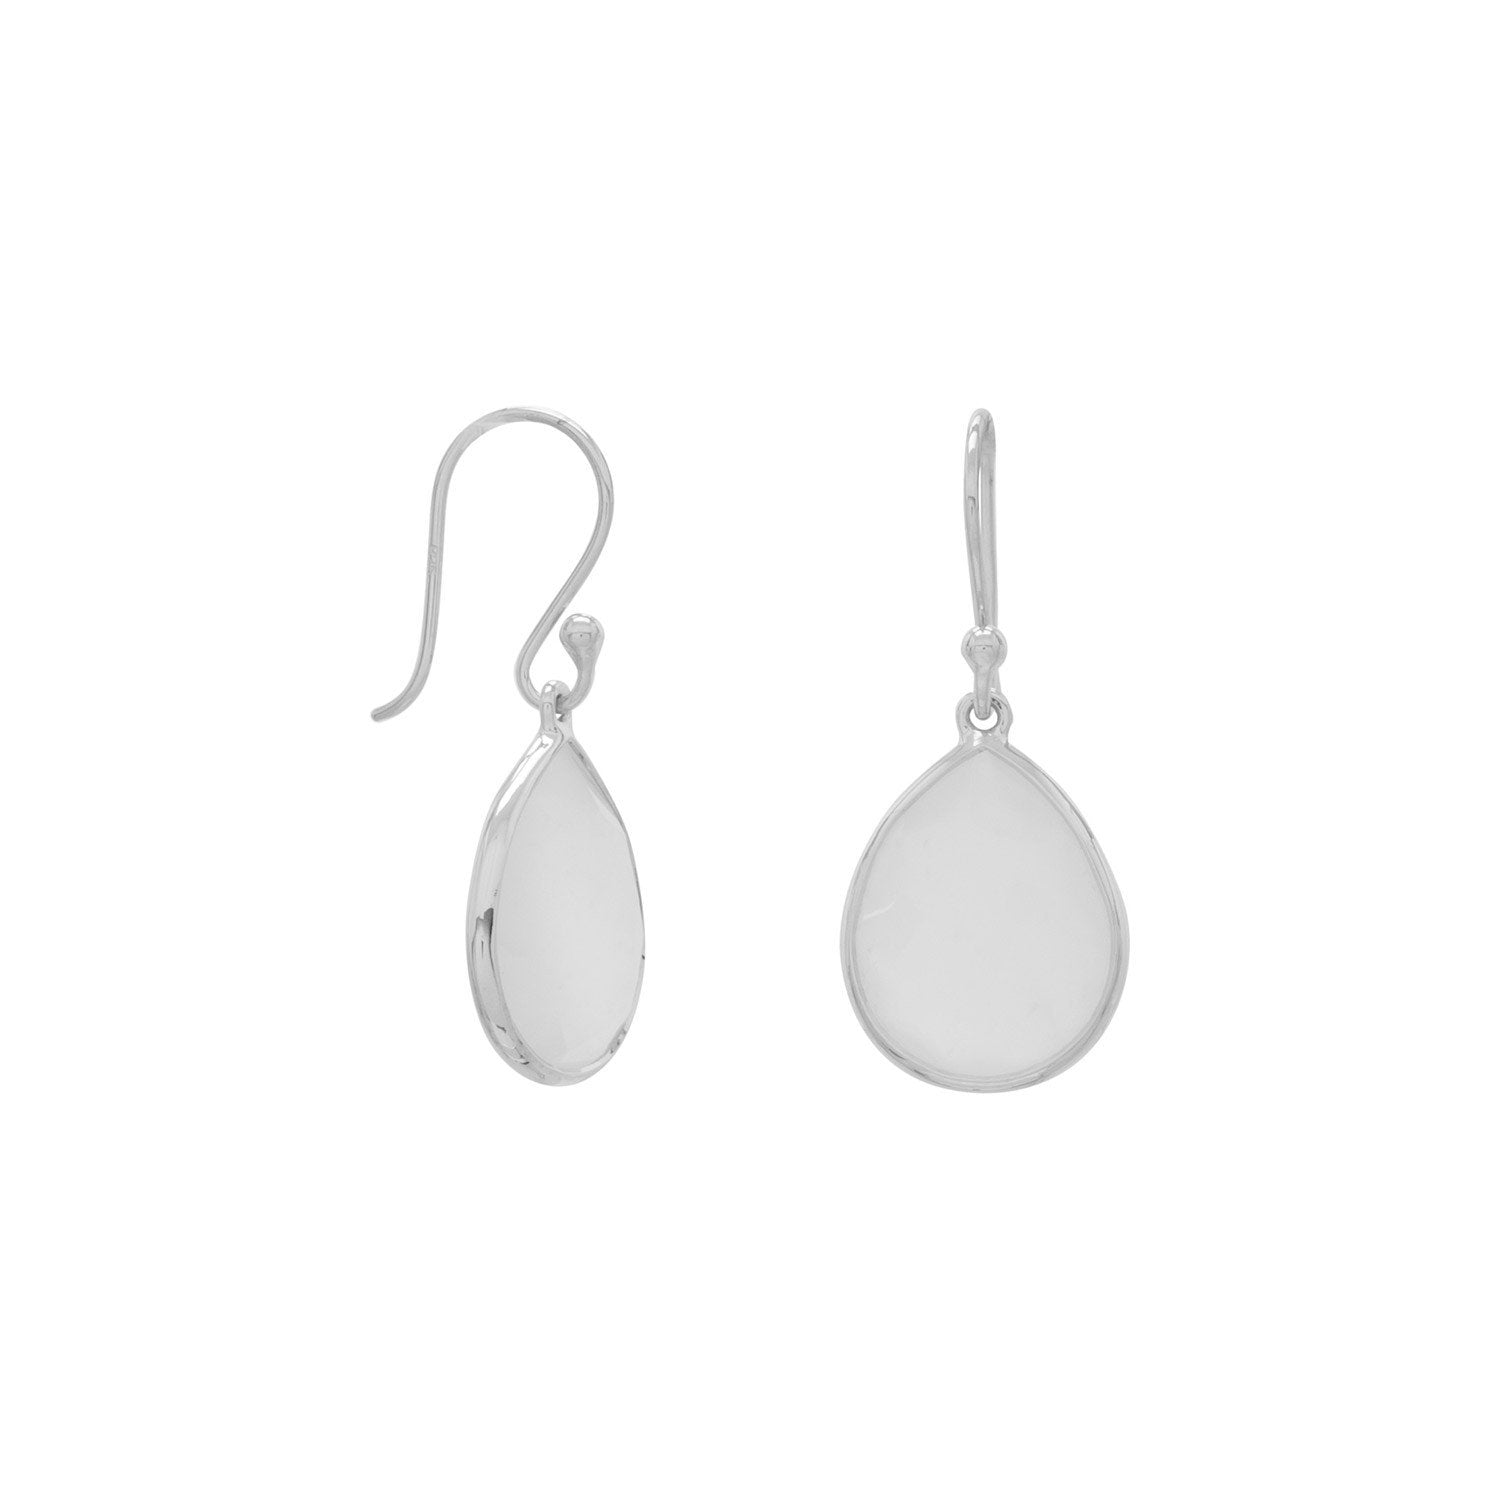 Pear Shape Freeform Faceted Moonstone Earrings - Rocky Mt. Outlet Inc - Shop & Save 24/7